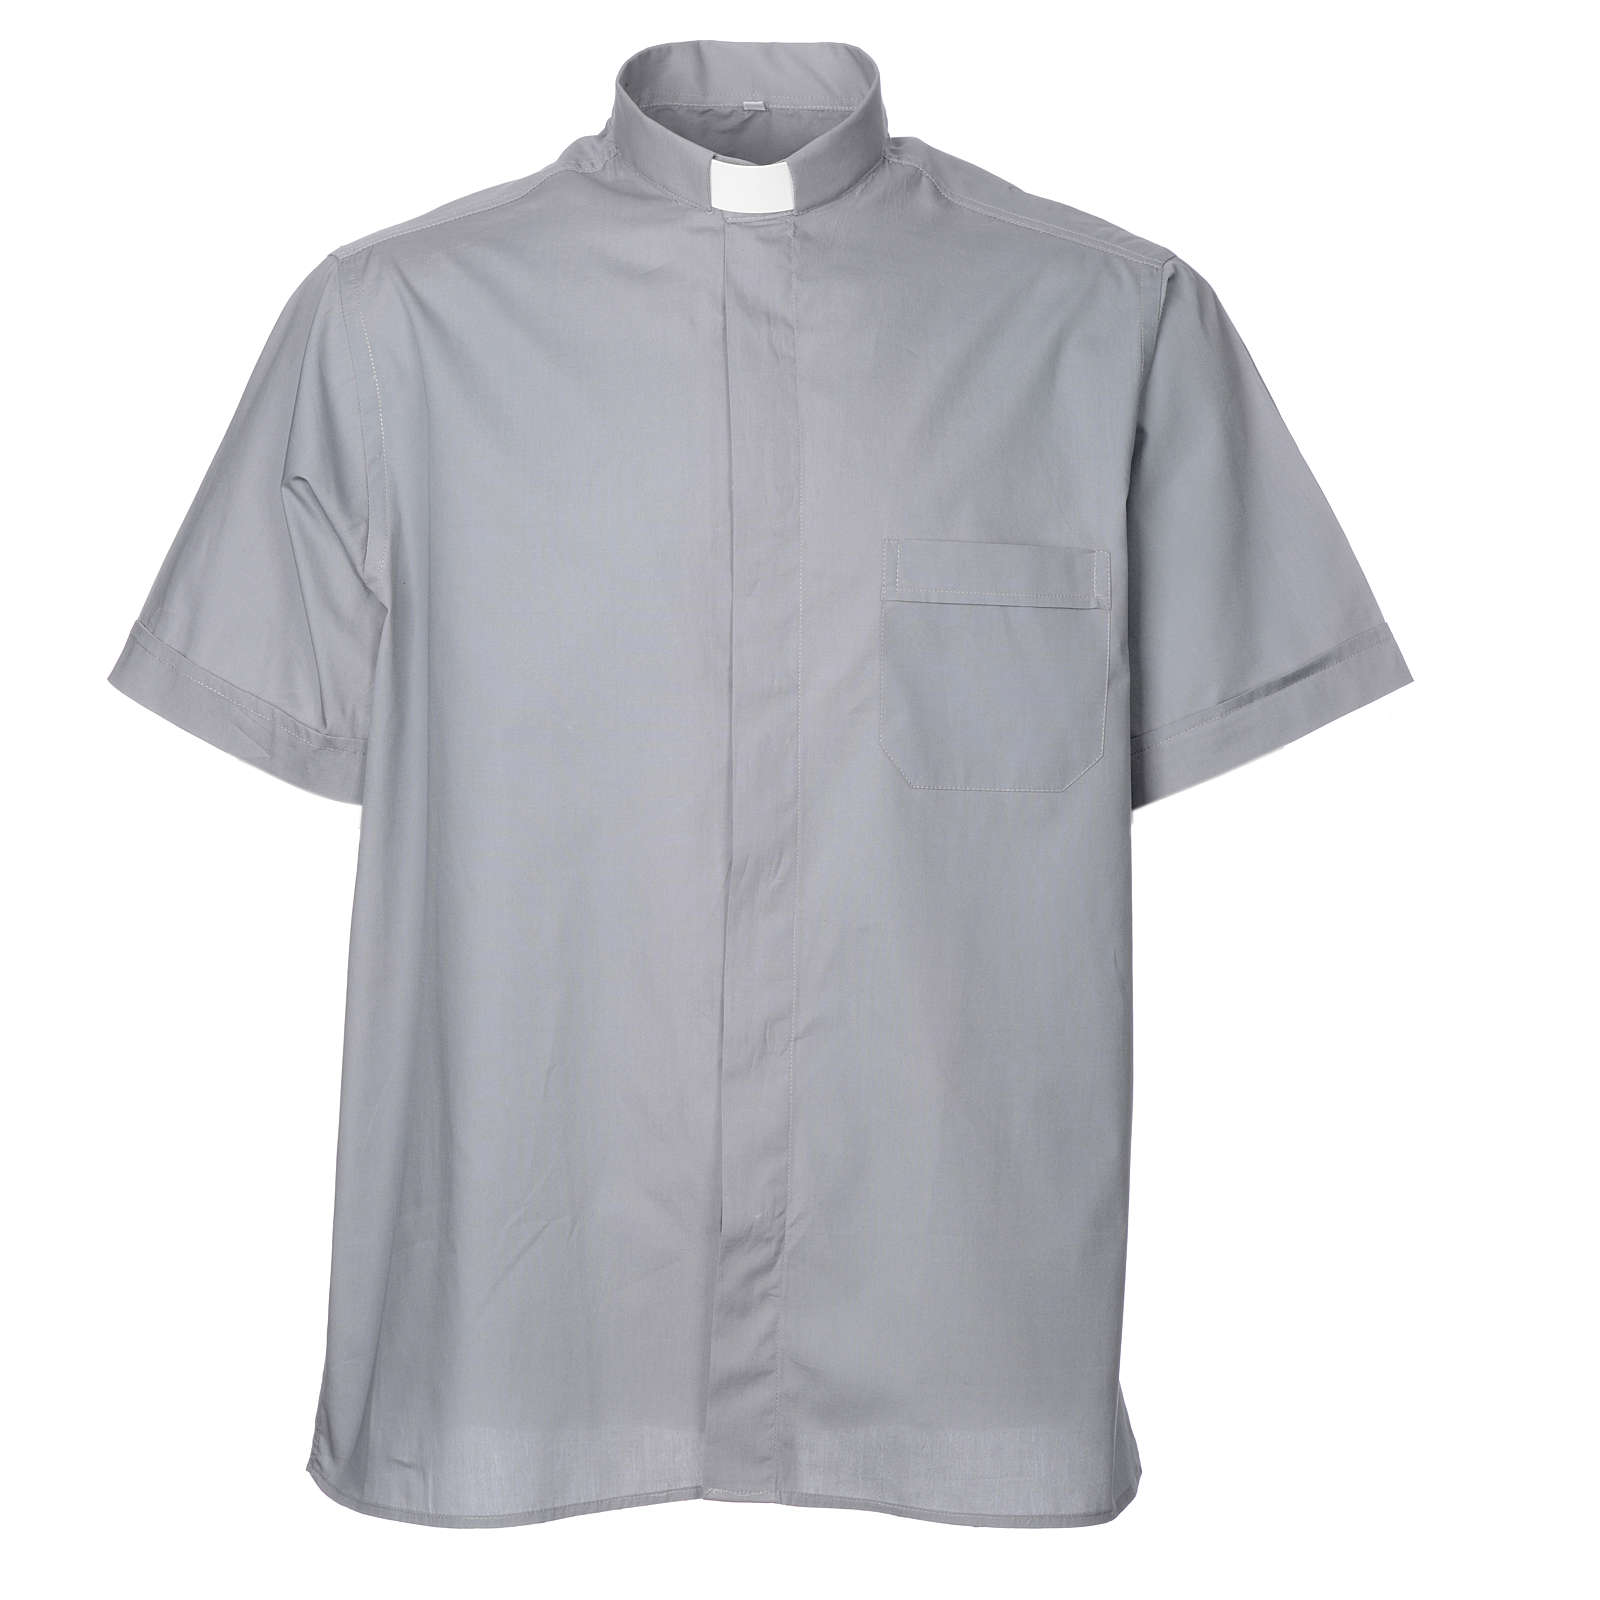 STOCK Clergy shirt, short sleeves in light grey mixed cotton 4